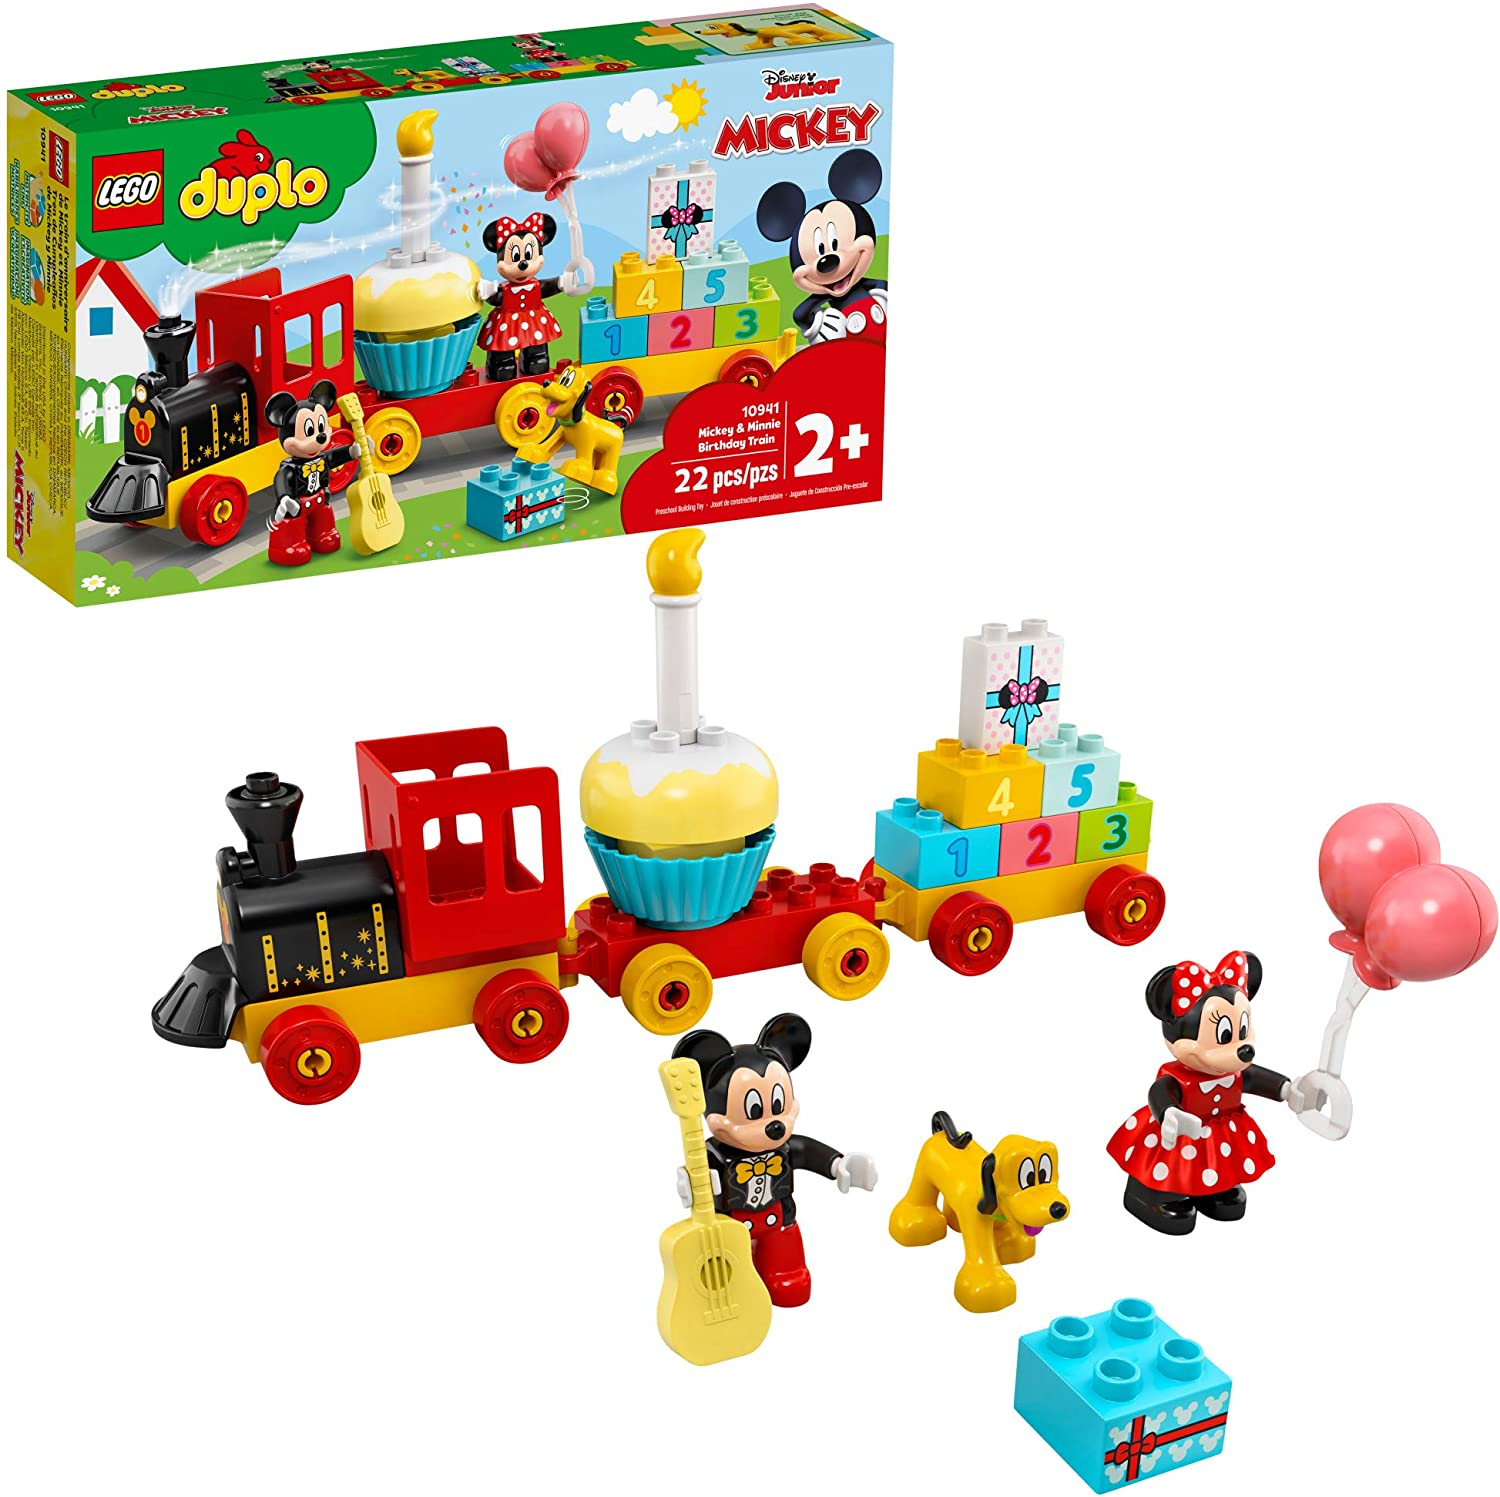 LEGO DUPLO Disney Mickey & Minnie Birthday Train 10941 Kids' Birthday Number Train; Learning and Building Playset, New 2021 (22 Pieces)